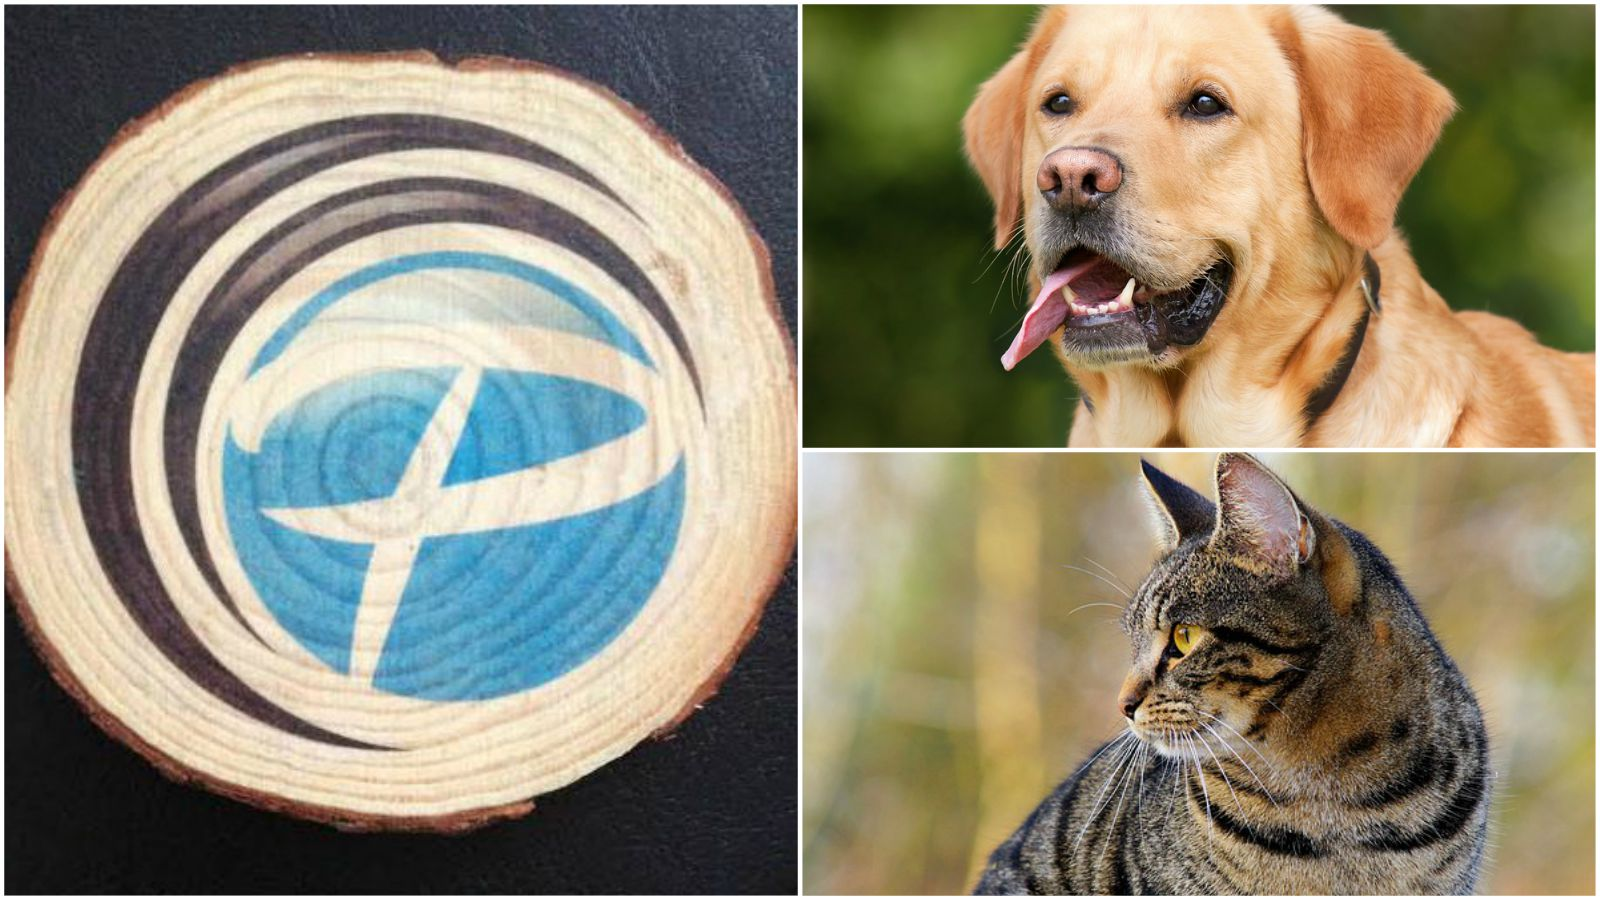 Transfer your pet's photo on wood with photo wood plaque coasters.